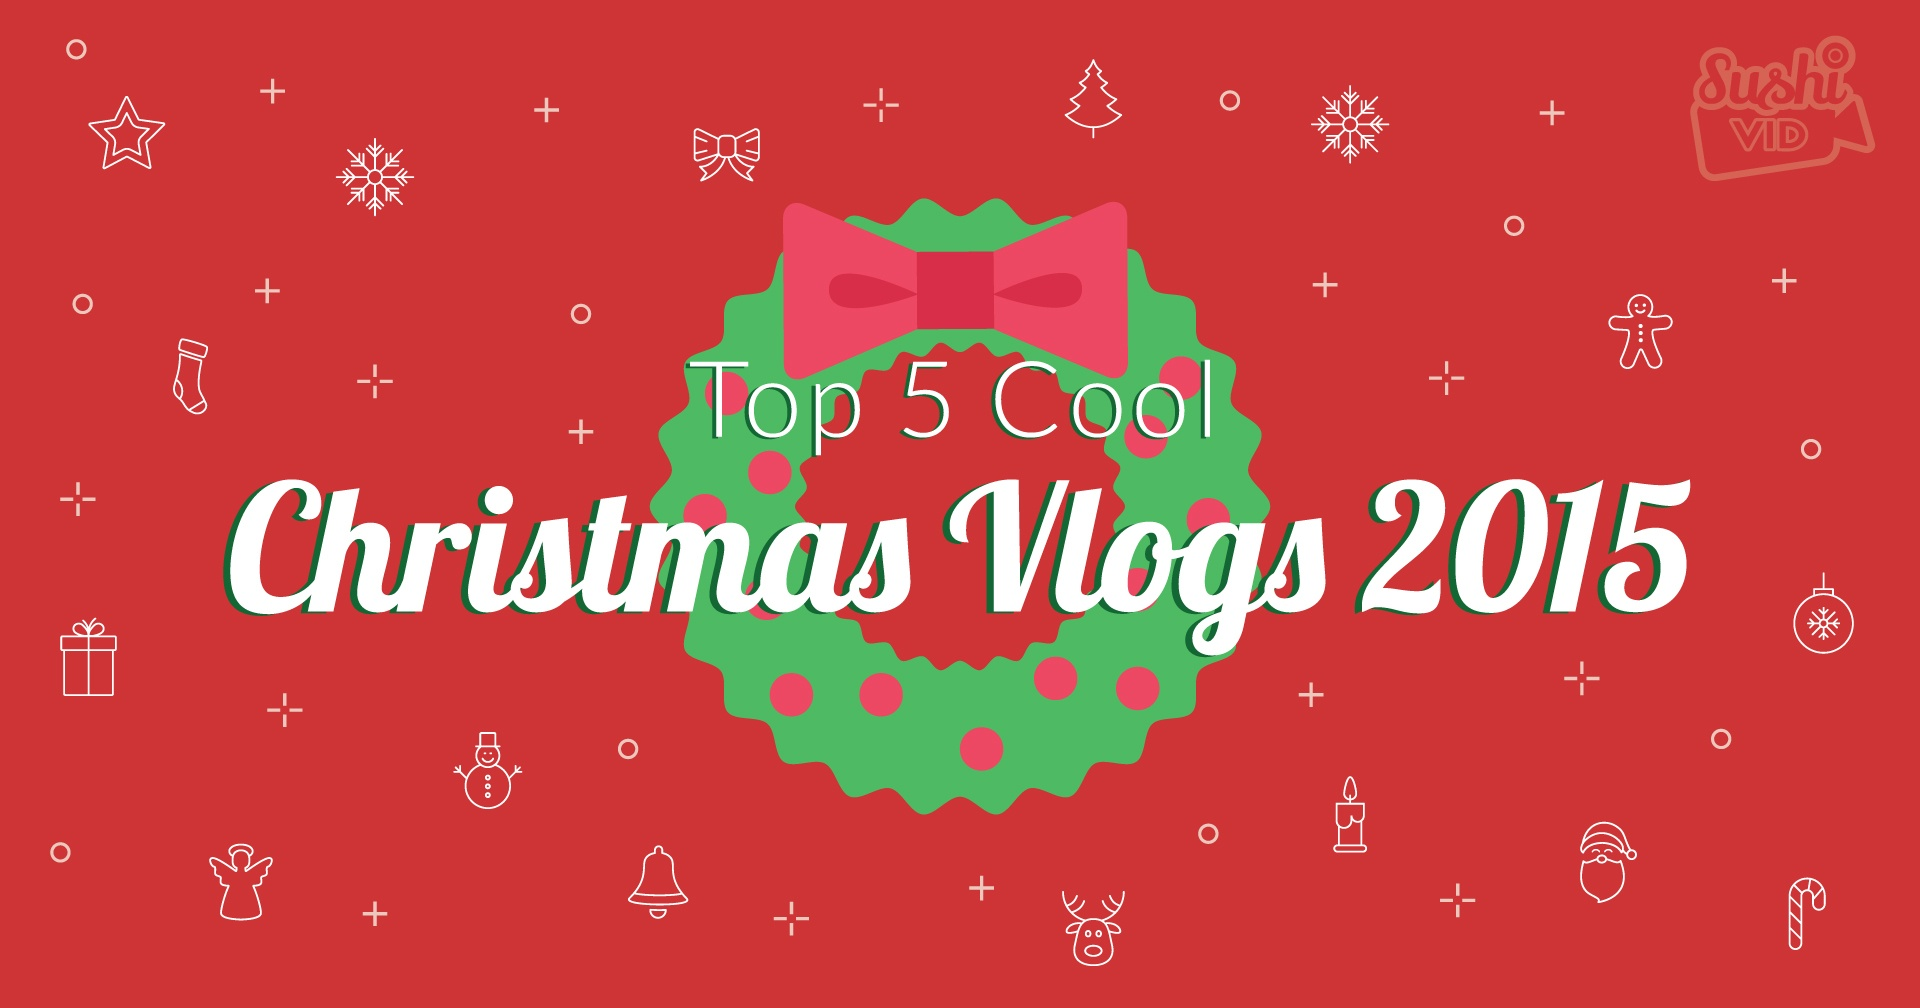 20151216 - Top 5 Cool Christmas Vlogs 2015 - Influencer Marketing.jpg